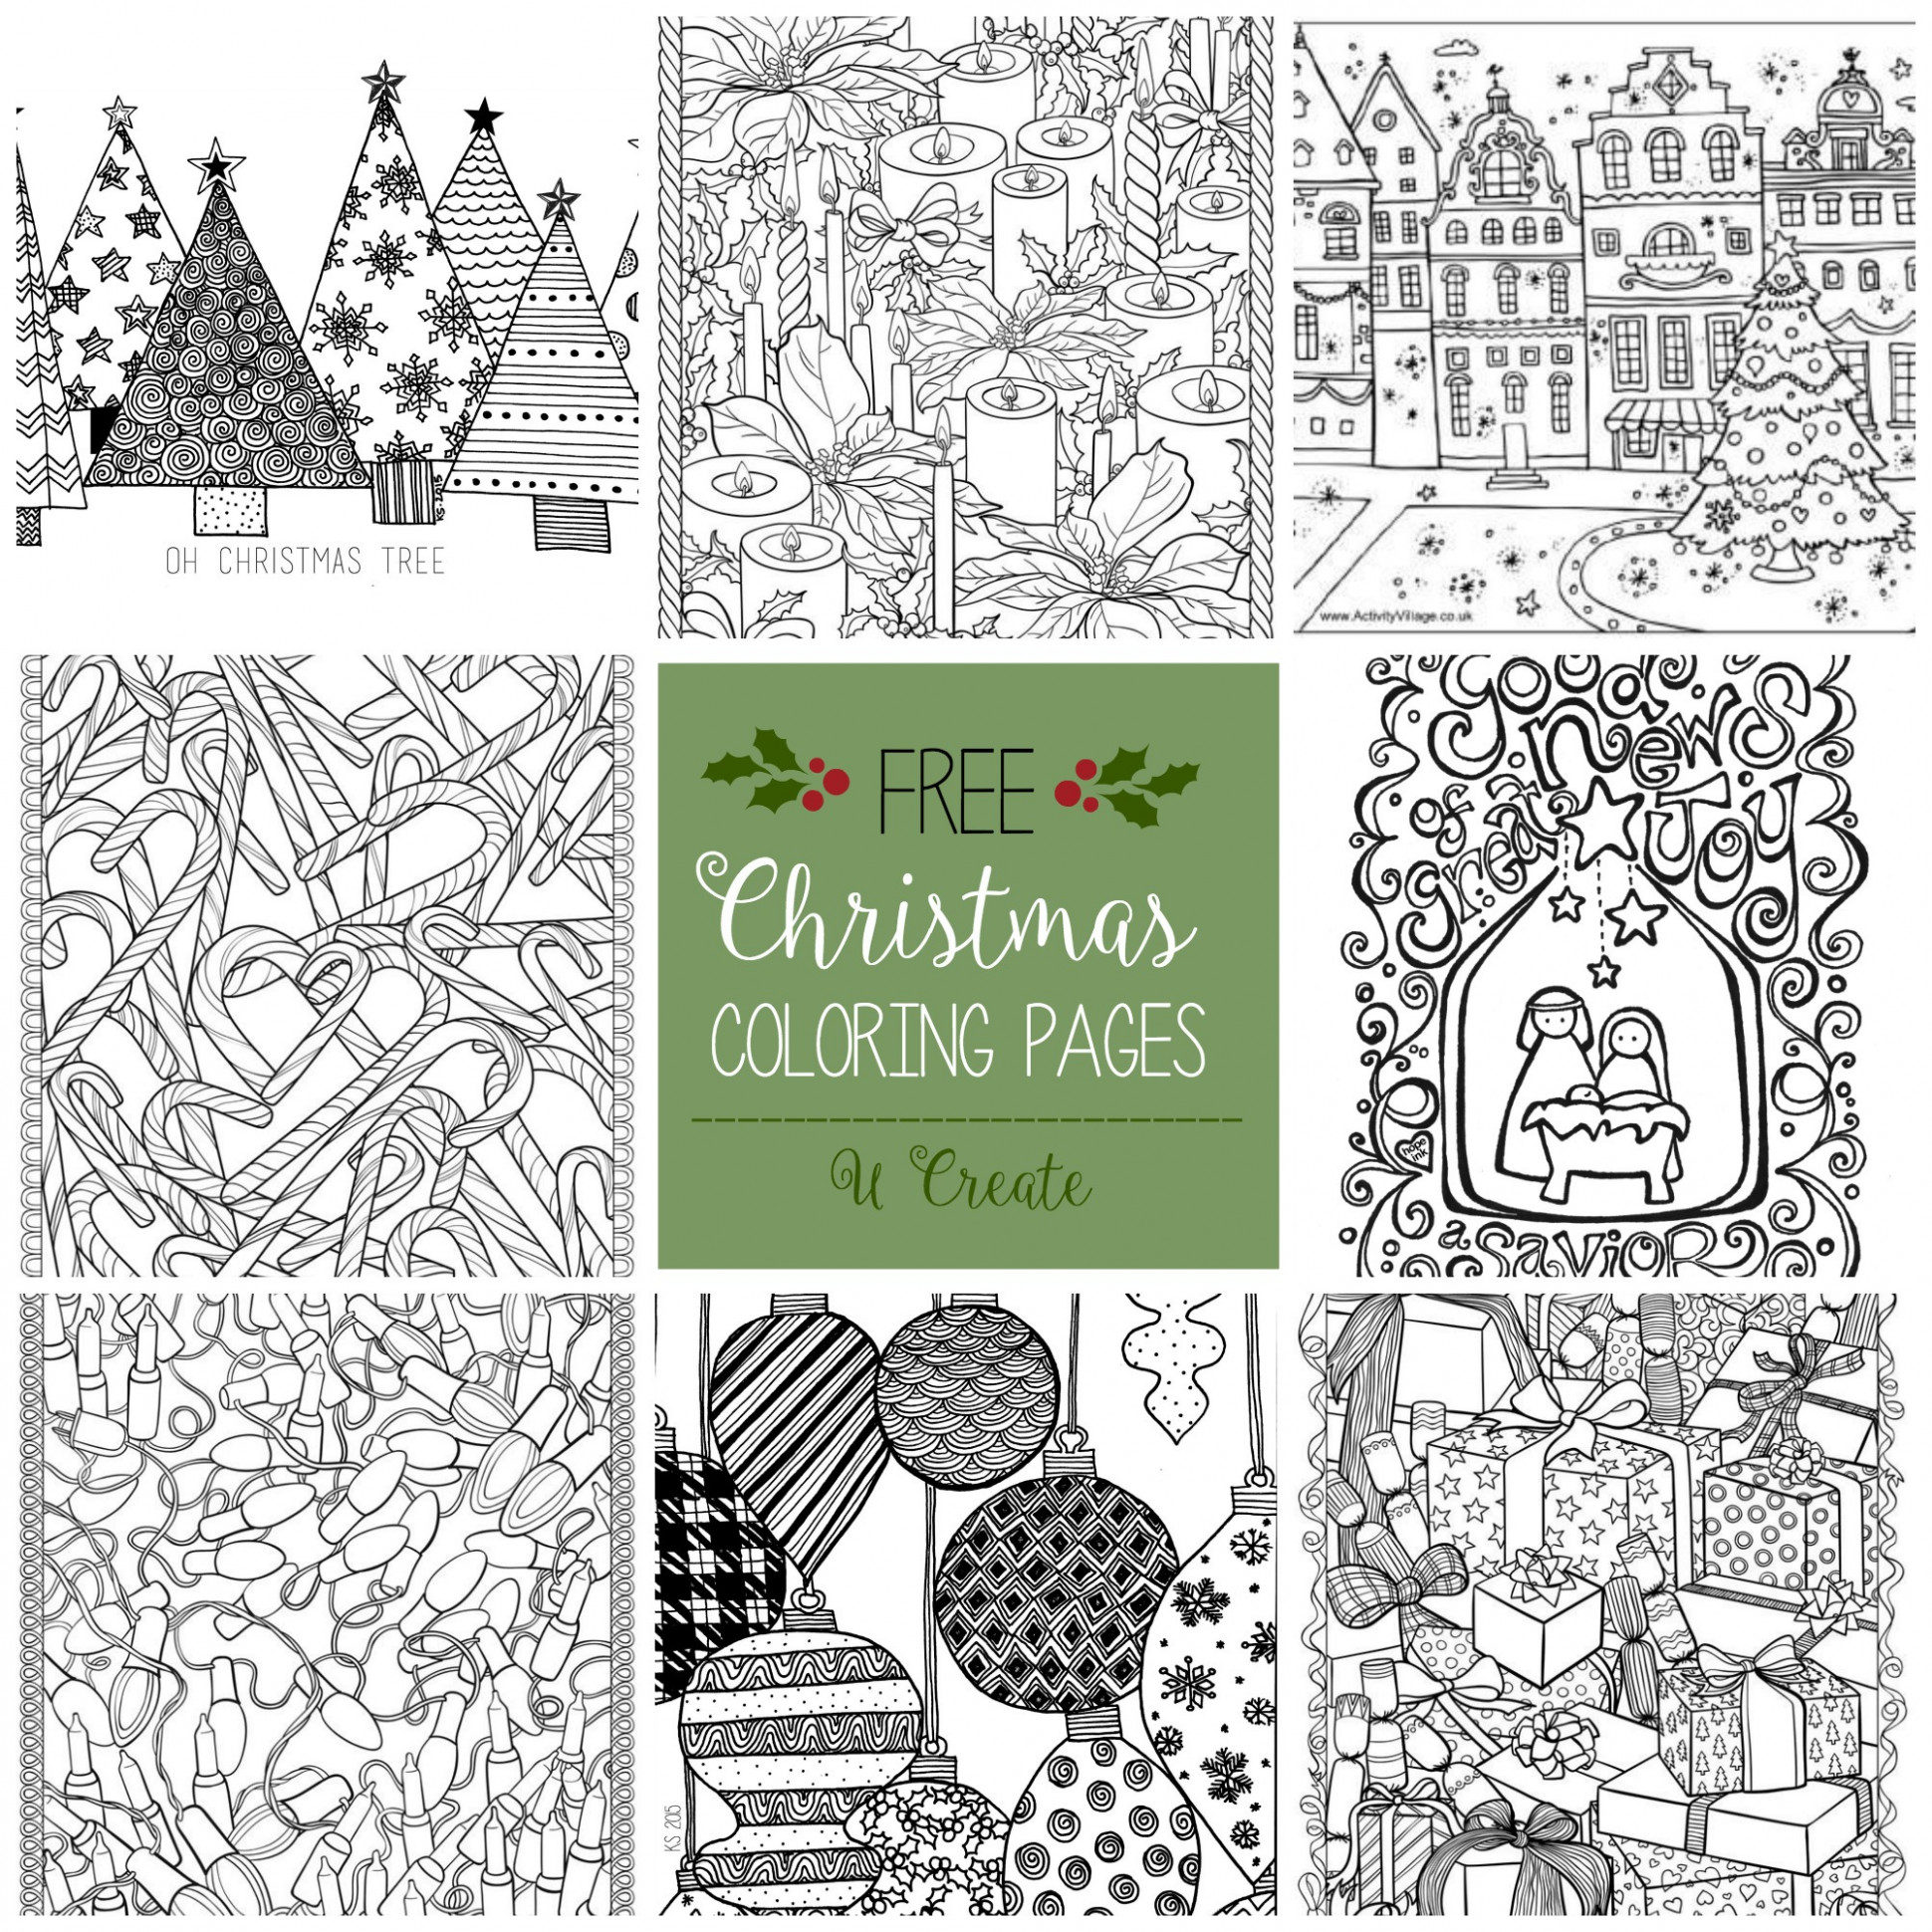 Free Christmas Adult Coloring Pages – U Create – Christmas Coloring Pages For Adults Printable Free